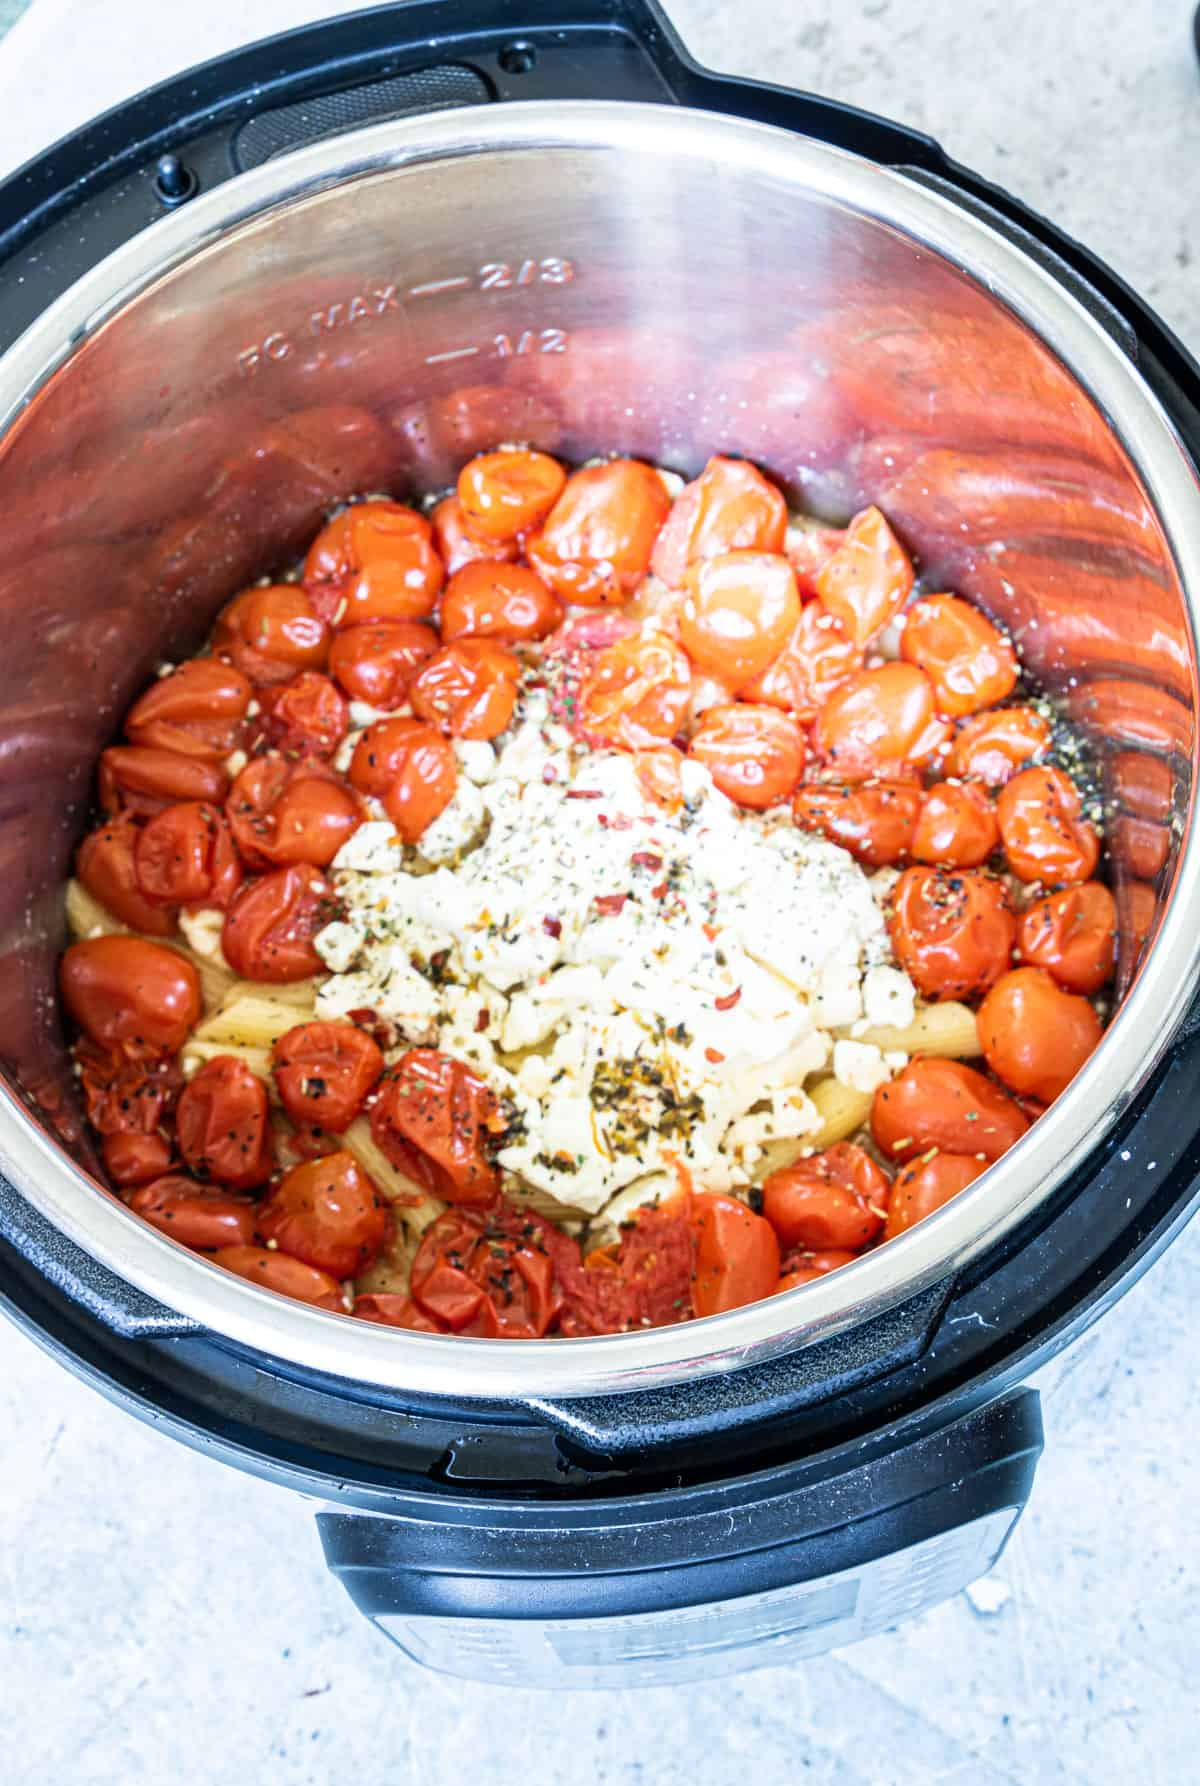 baked feta pasts inside the instant pot